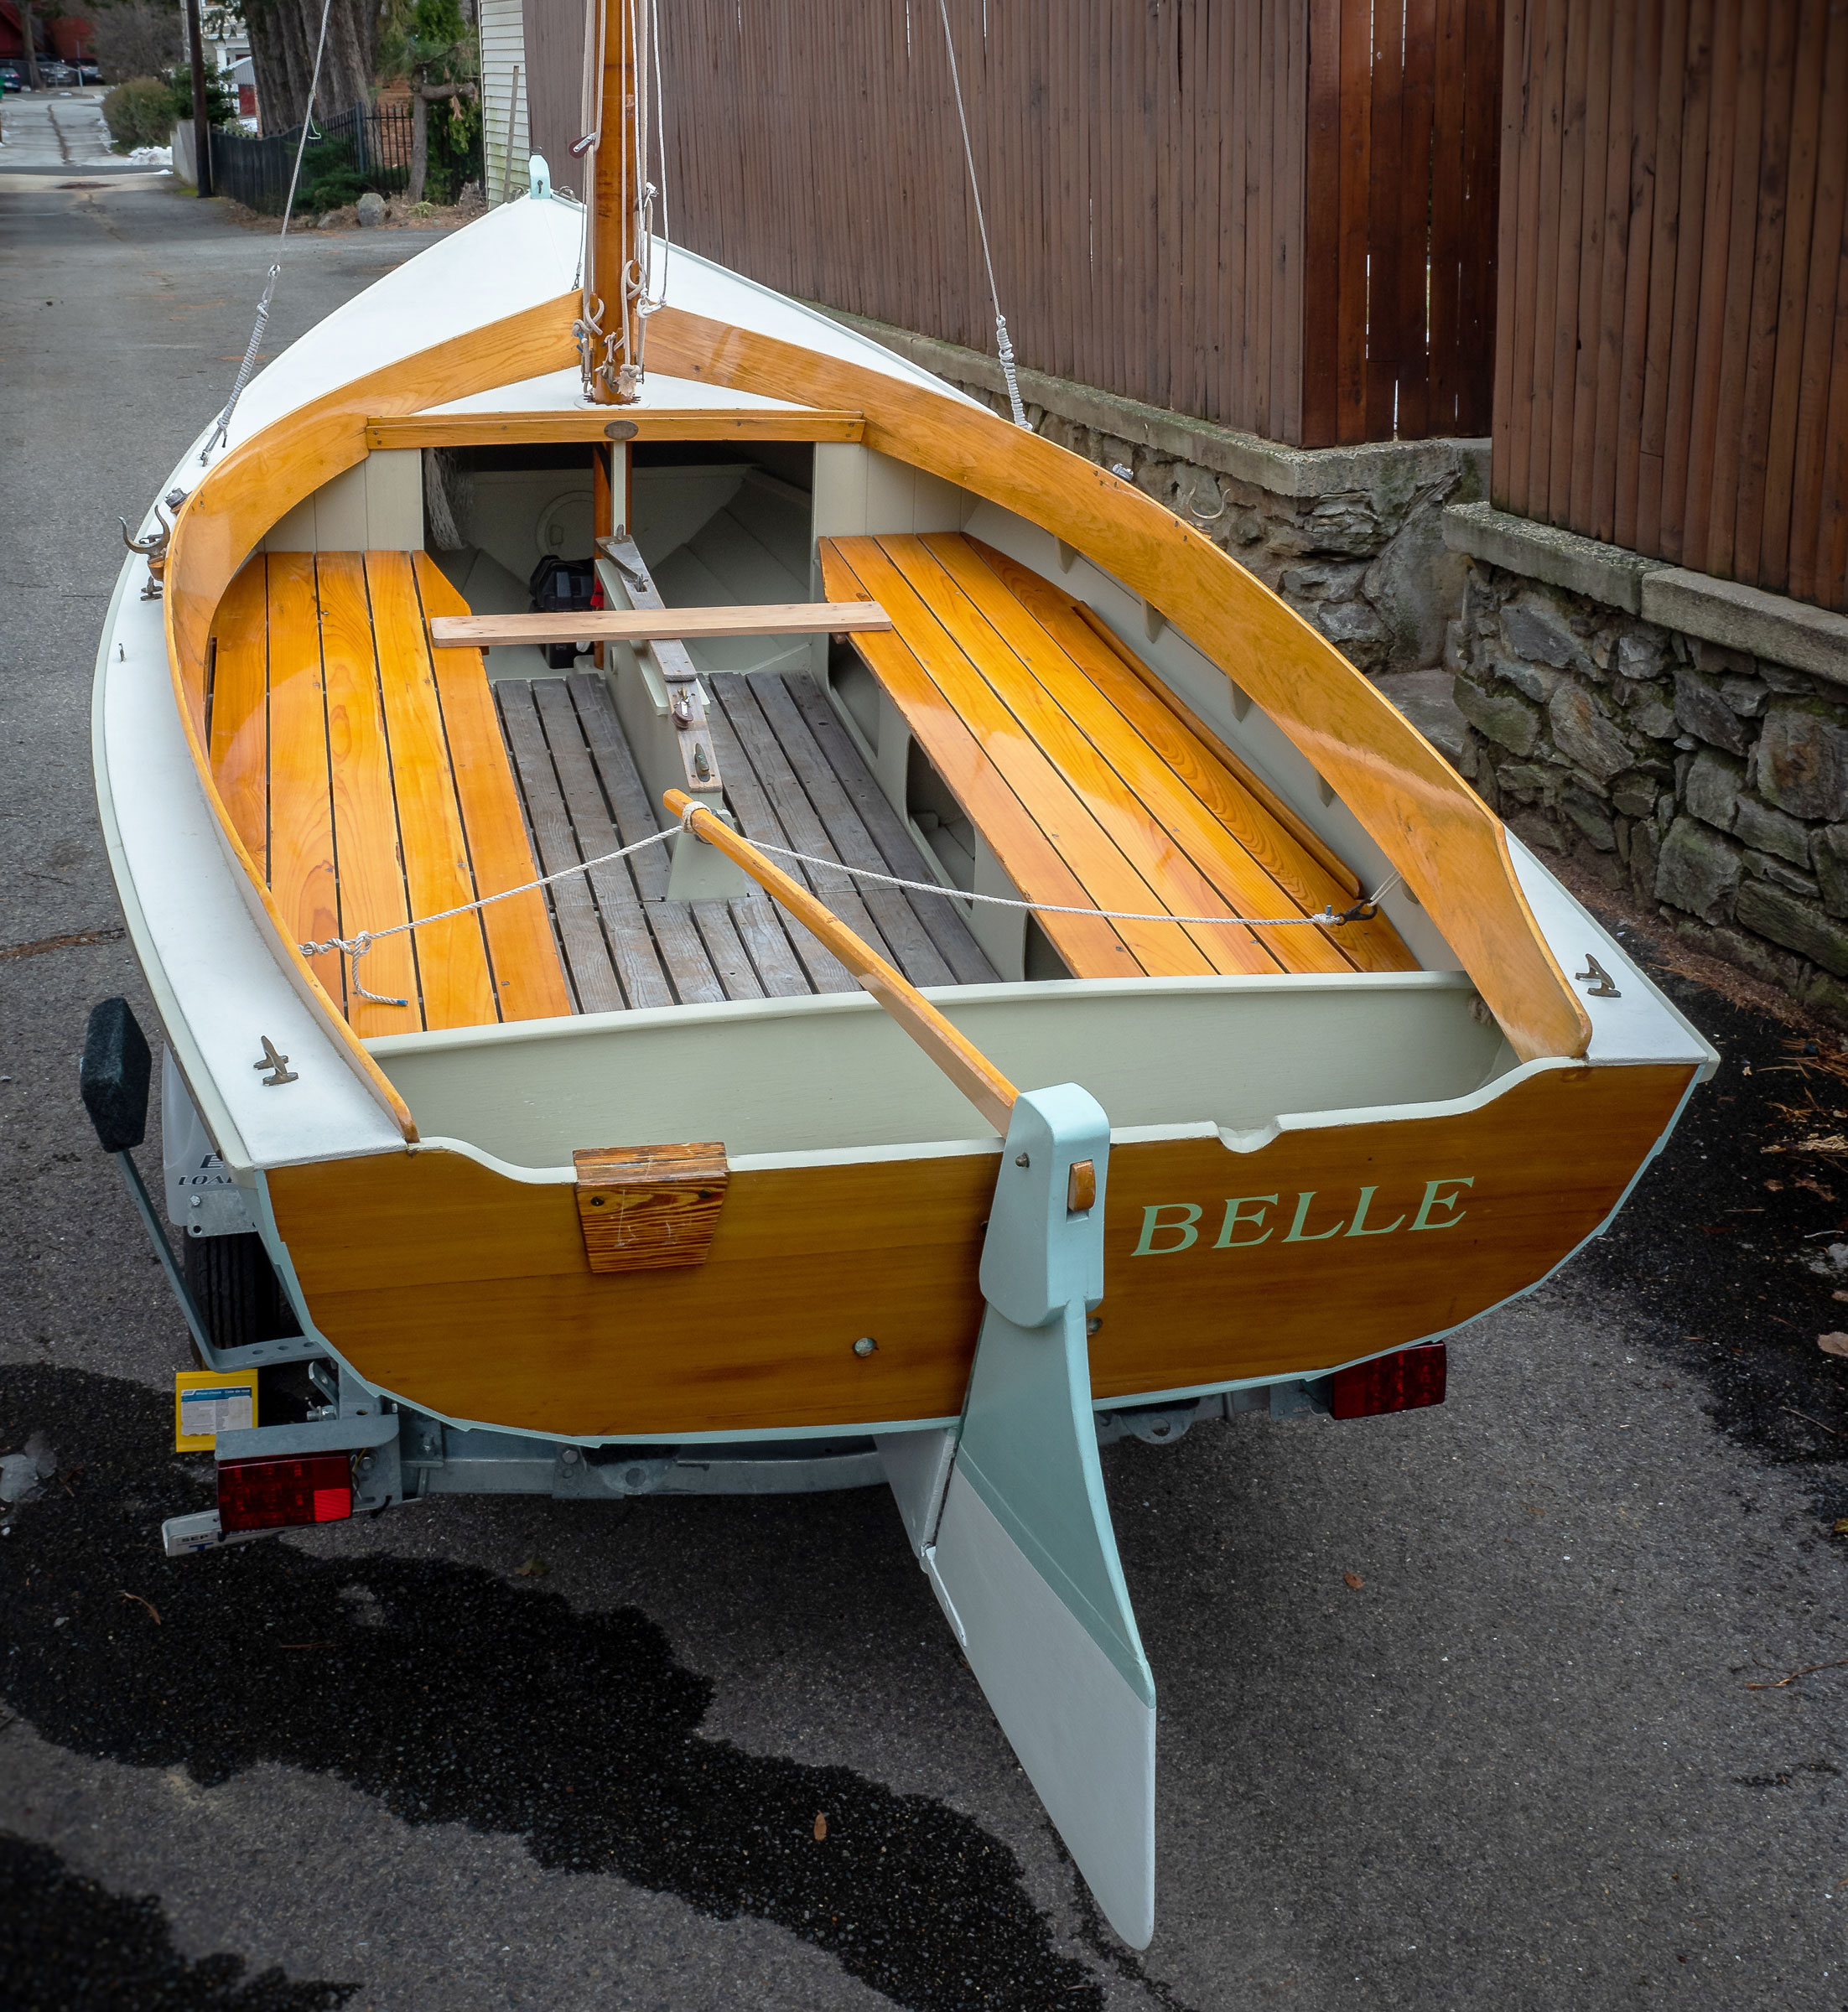 Belle Daysailer - Small Boats Magazine on